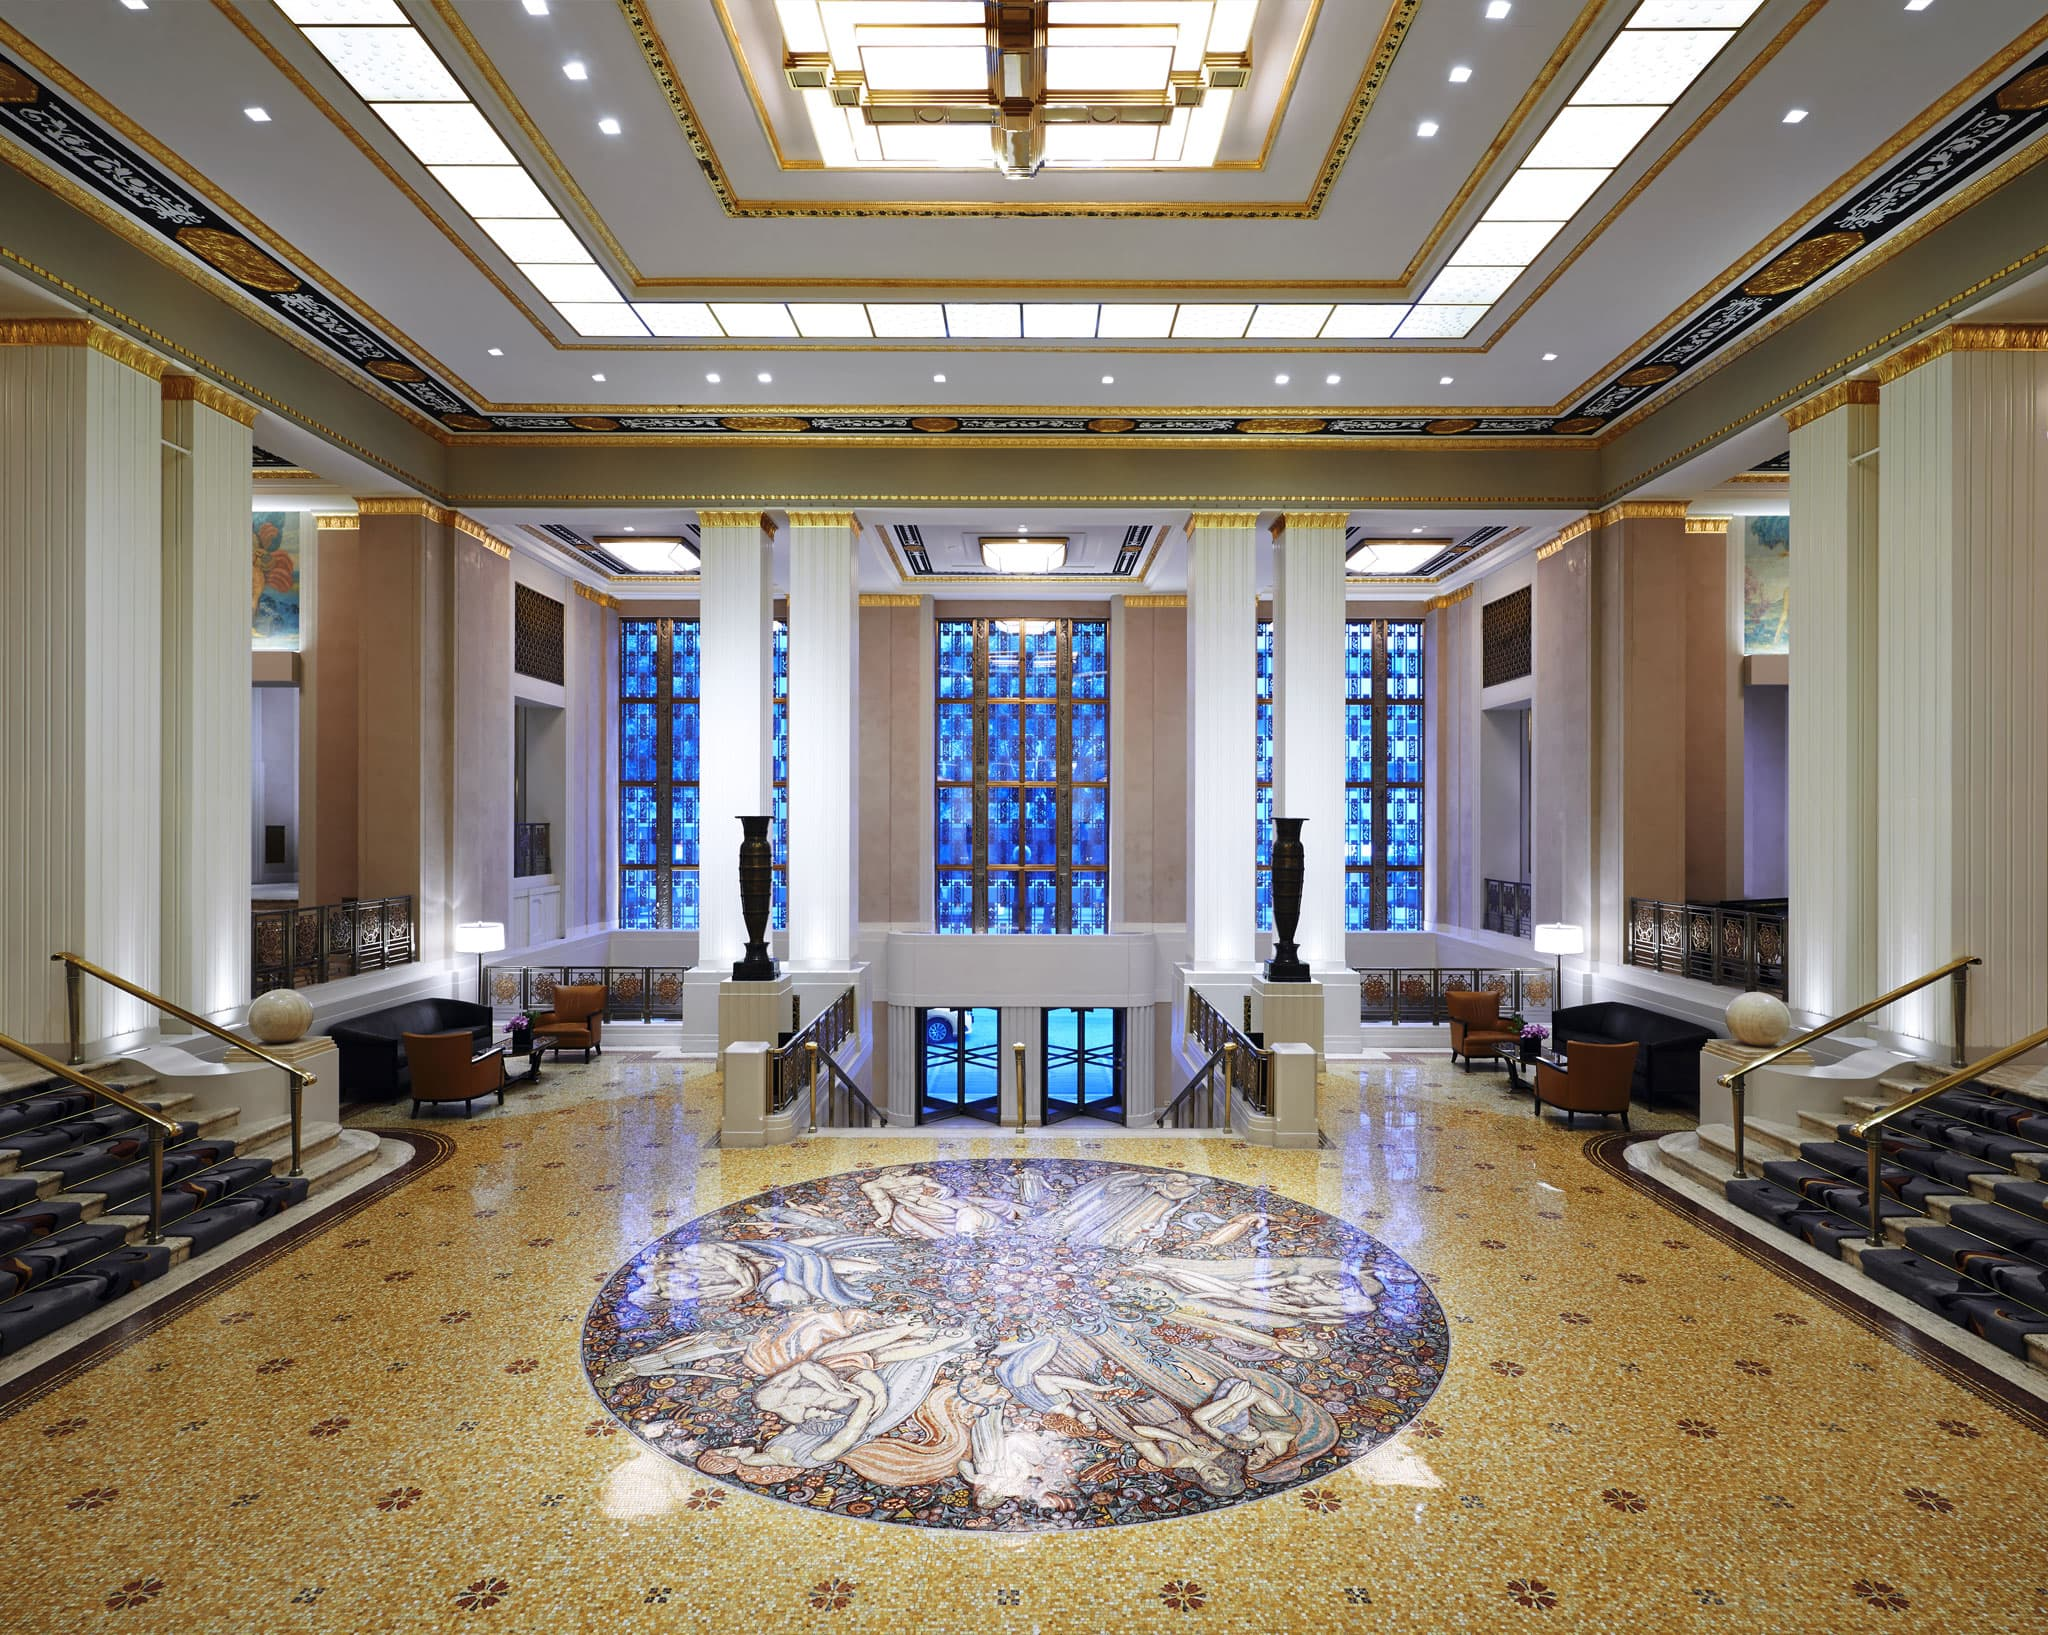 Park Avenue lobby of the Waldorf-Astoria Hotel. Credit: Hilton Worldwide